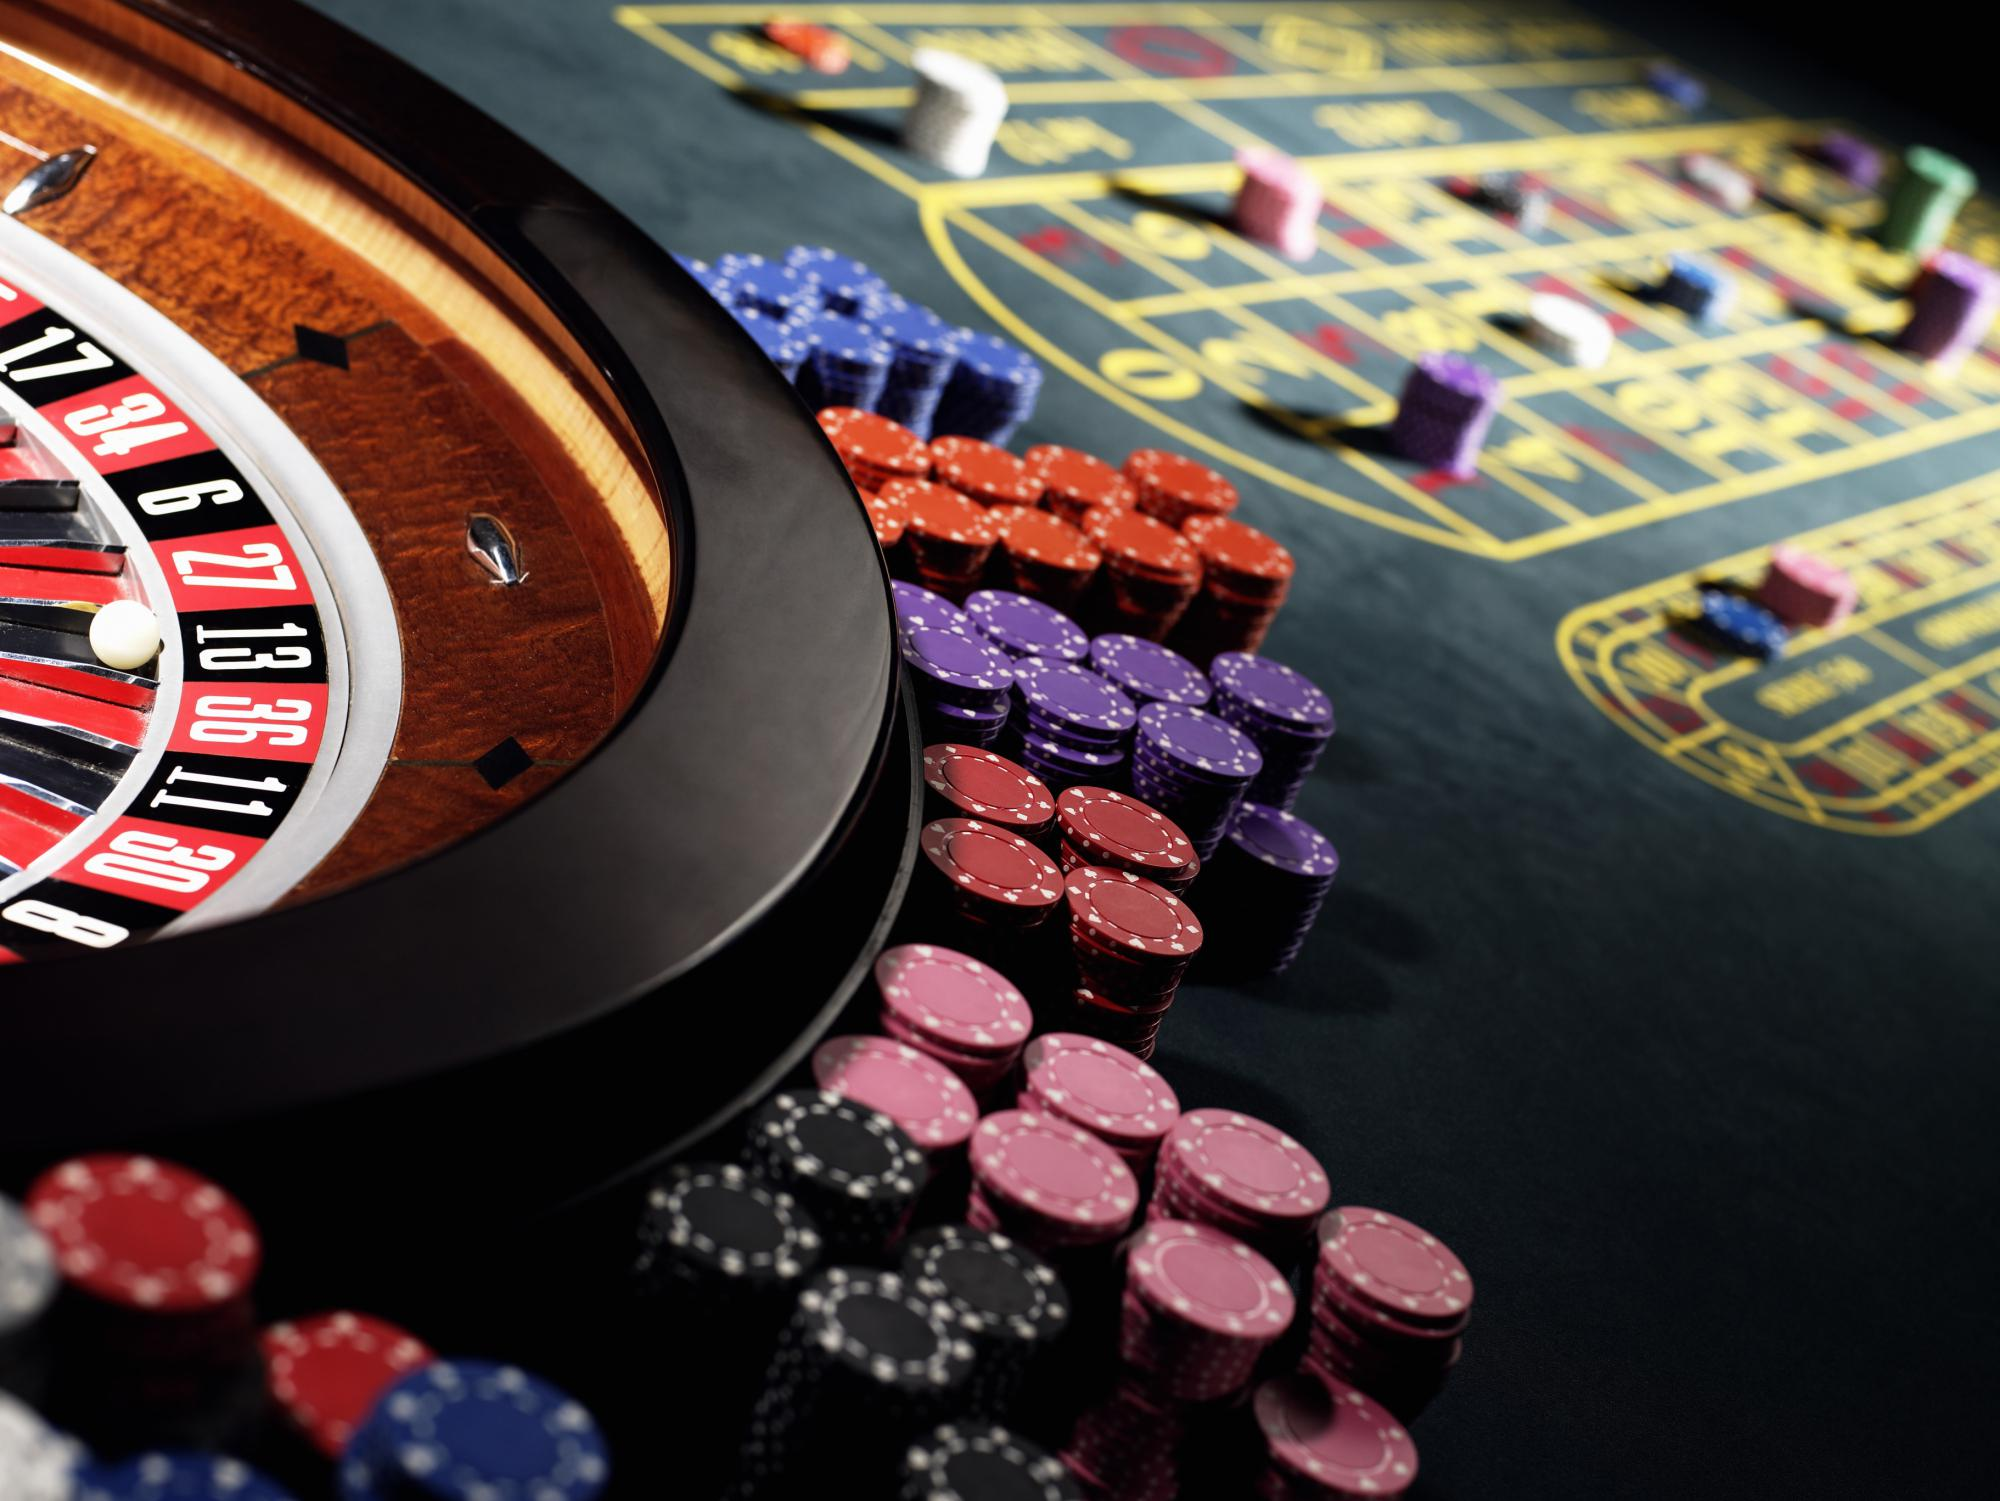 Casino gaming news sites black gambling jack online roulette